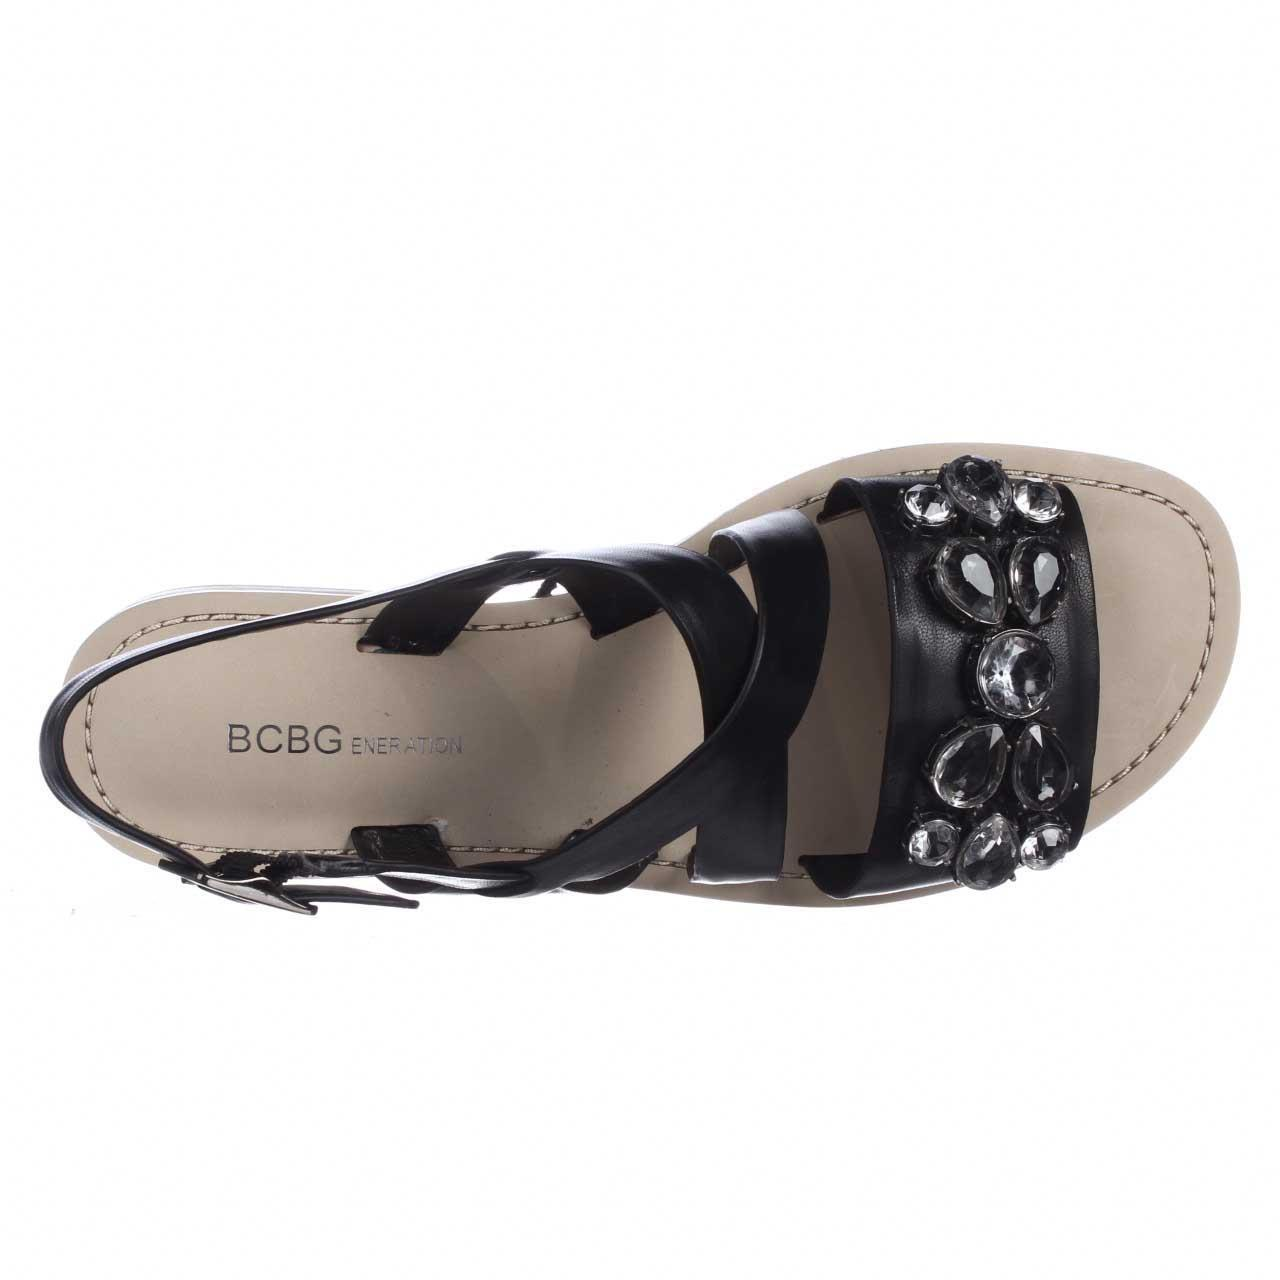 67c70e636f015 Lyst - Bcbgeneration Remmy Jeweled Flat Sandals in Black